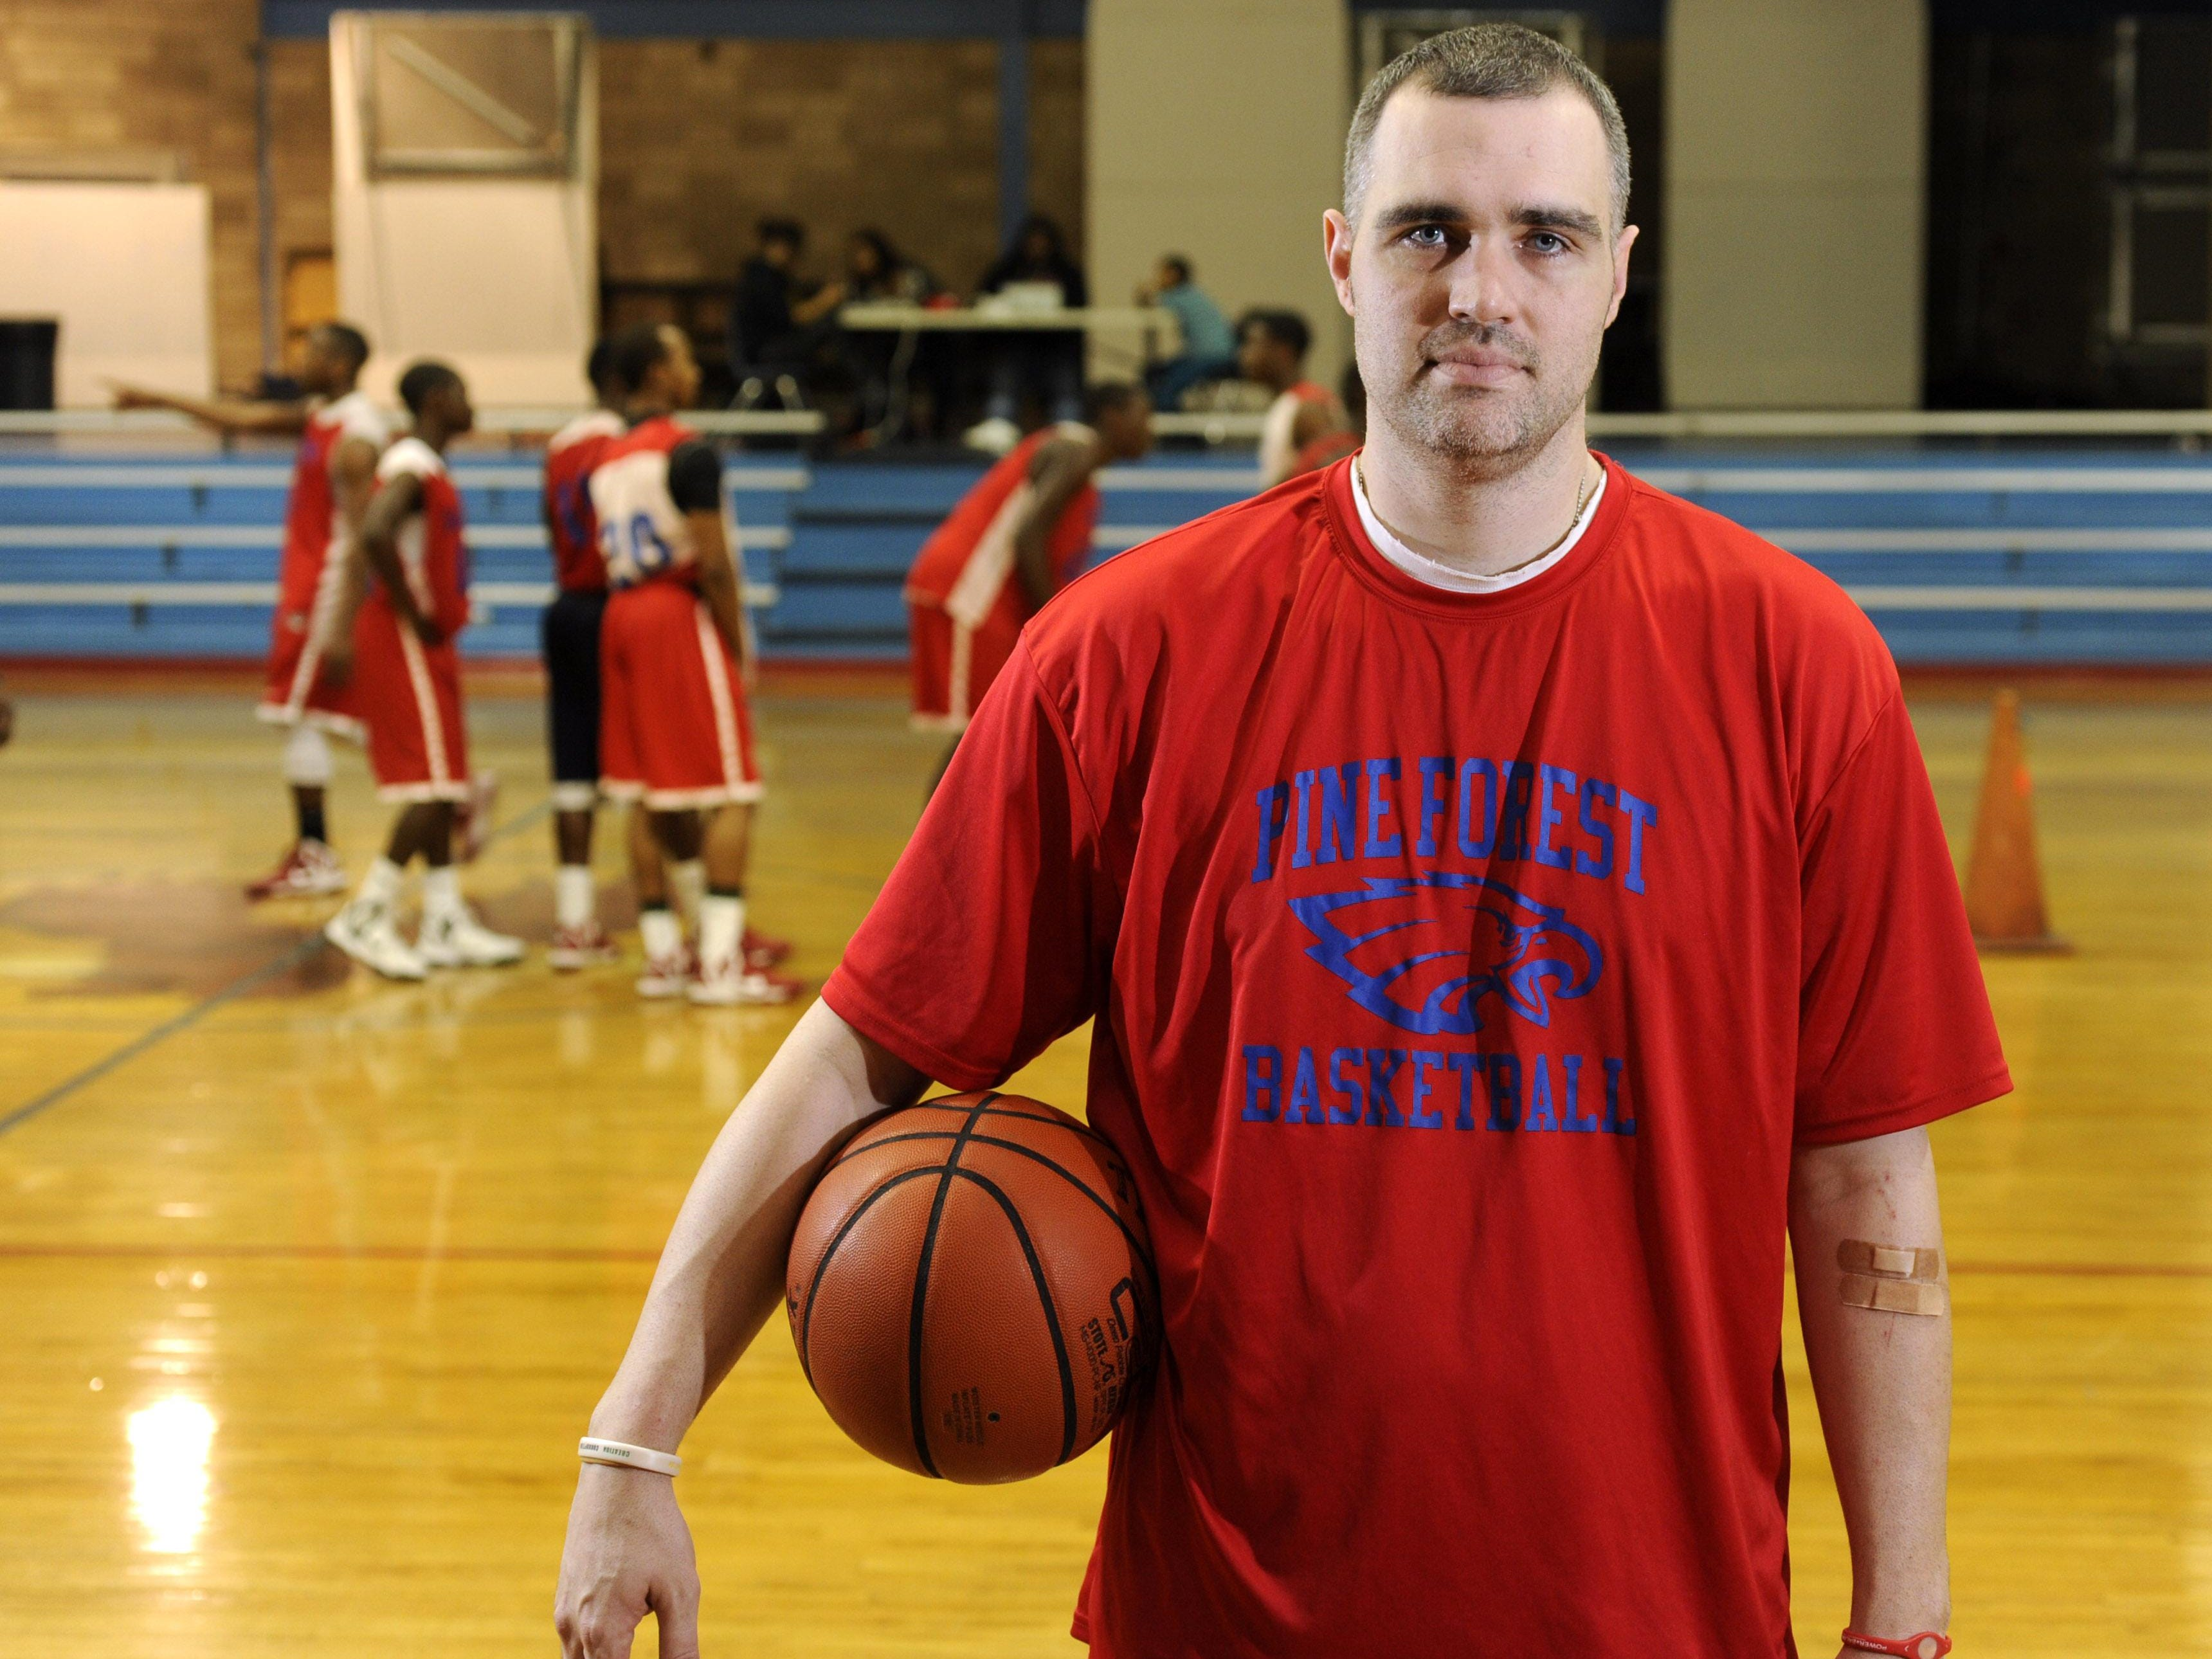 Former Pine Forest boys basketball coach Brad Grant leaves behind a legacy that will be hard to match. In Grant's five years, the Eagles advanced to the state tournament in Lakeland and played for the Class 6A state title.